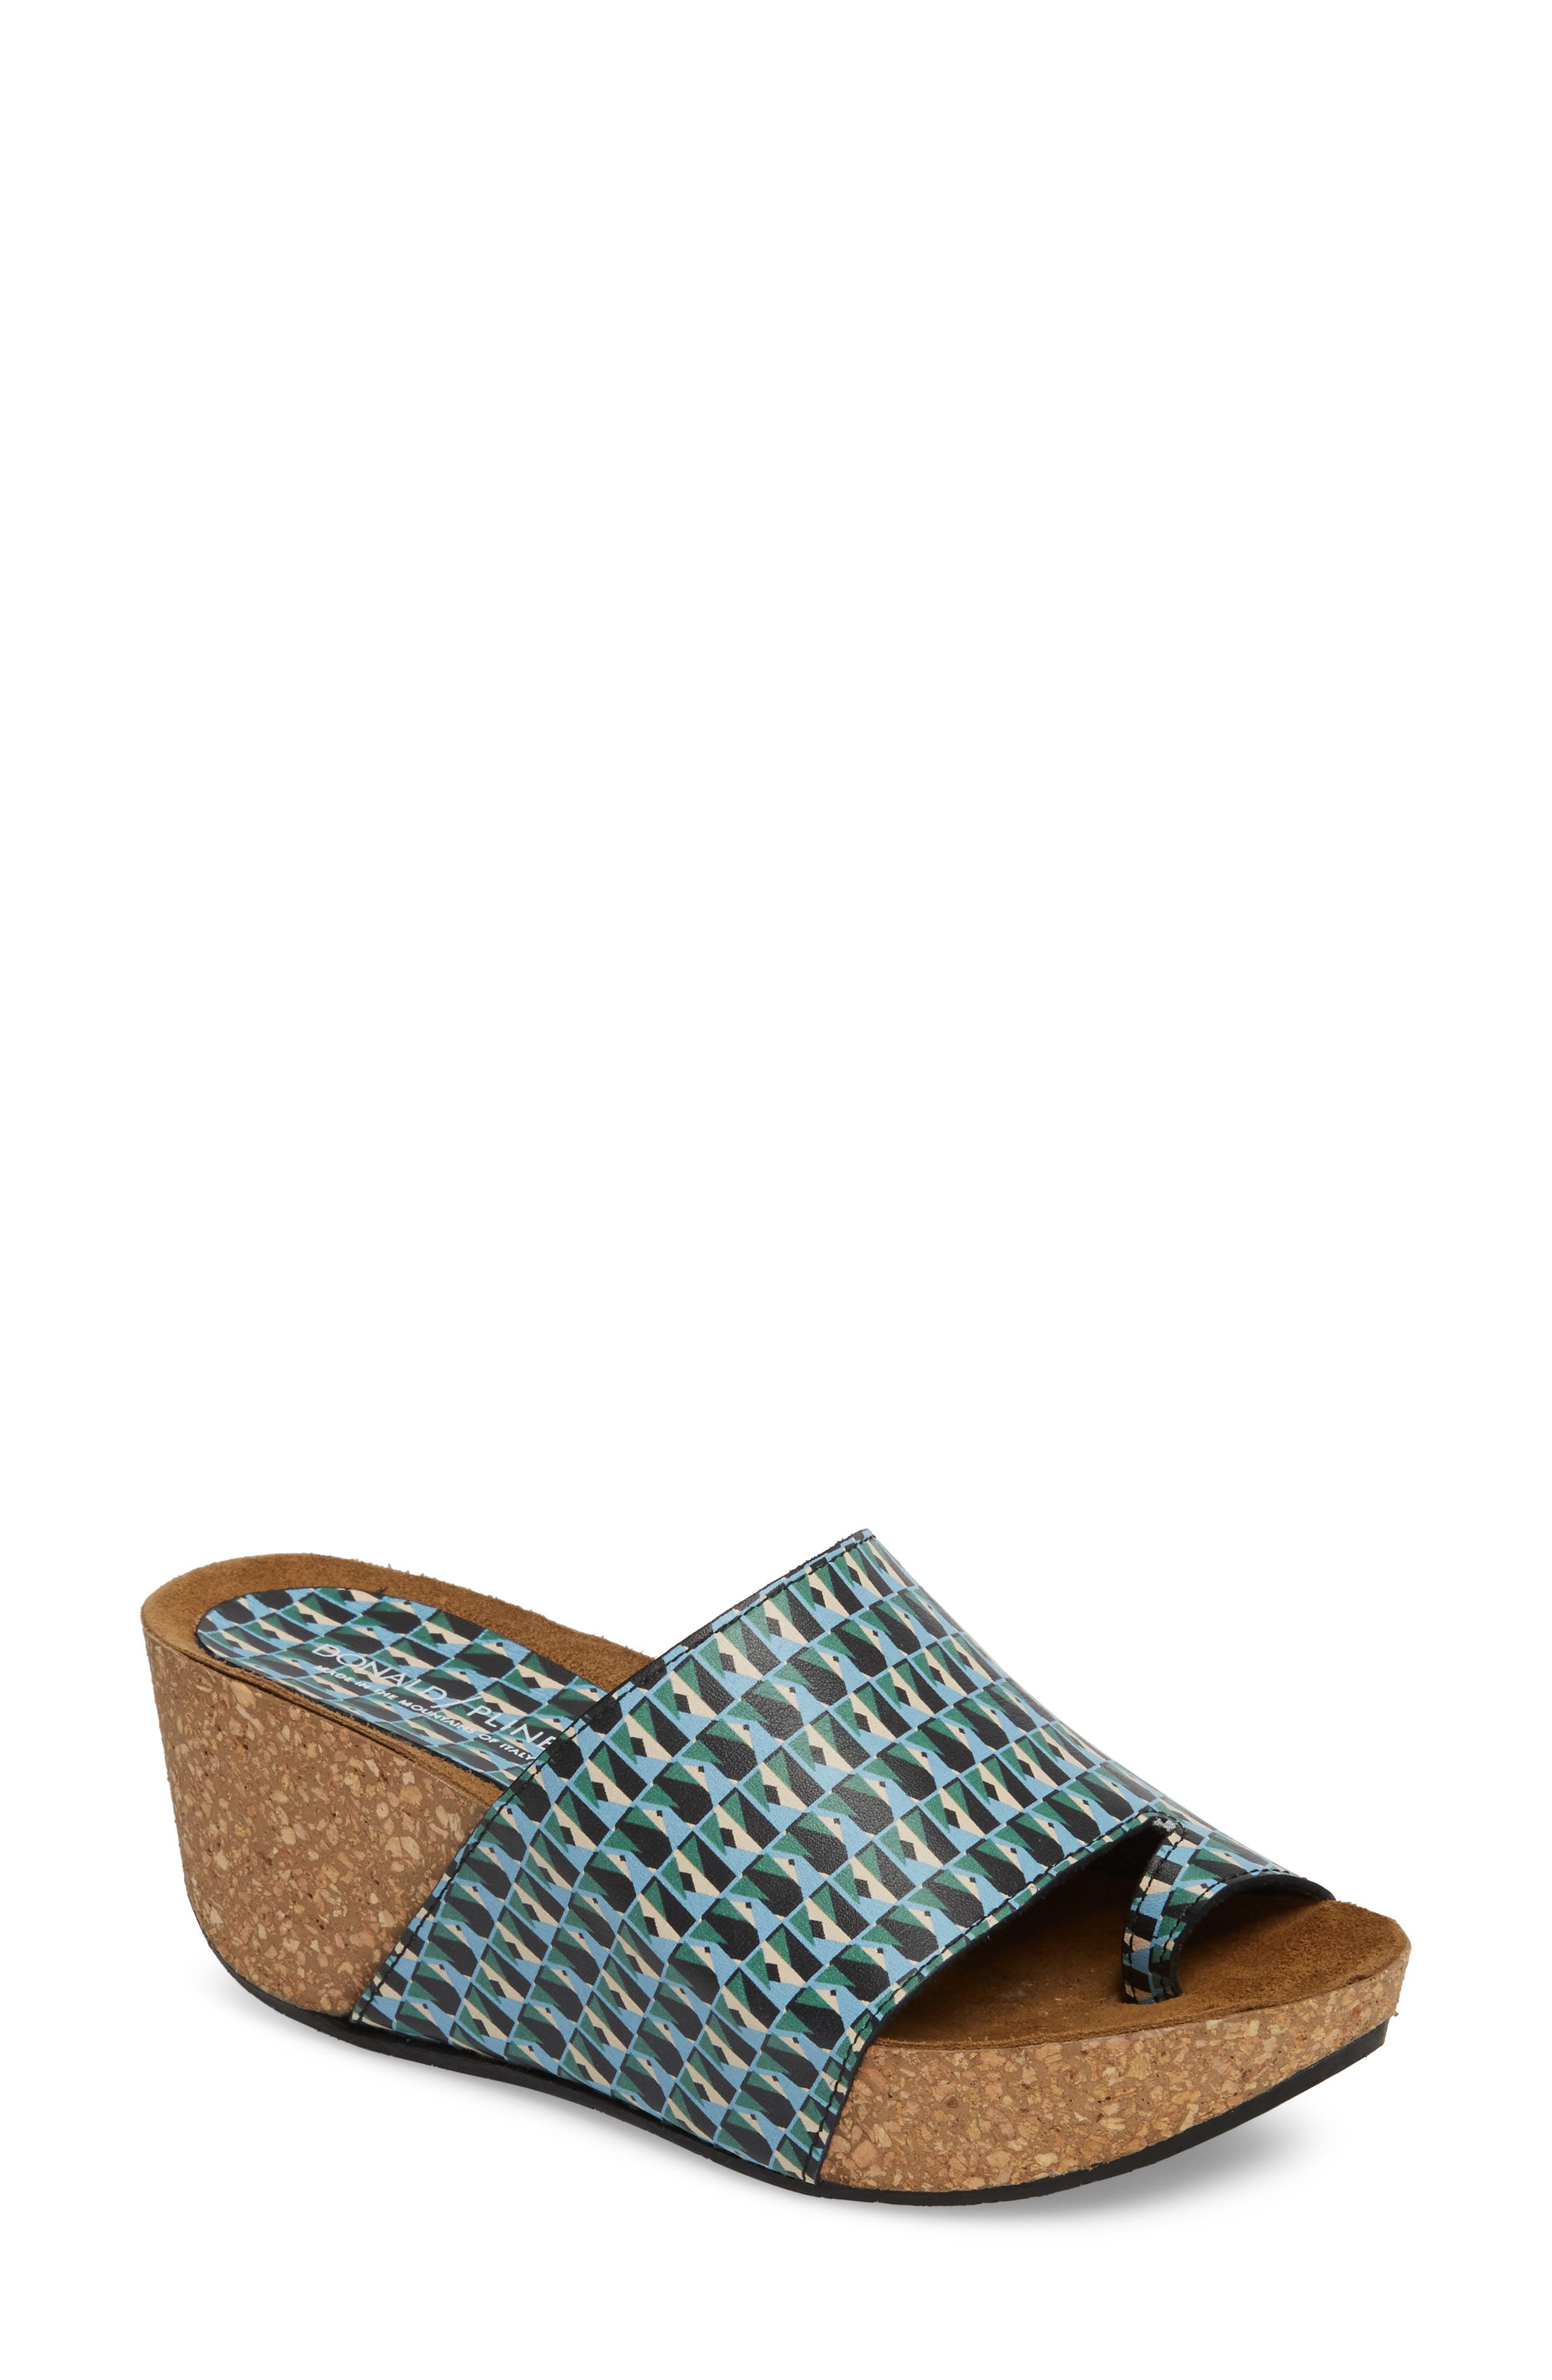 Donald J Pliner Ginie Platform Wedge Sandal,                             Main thumbnail 4, color,